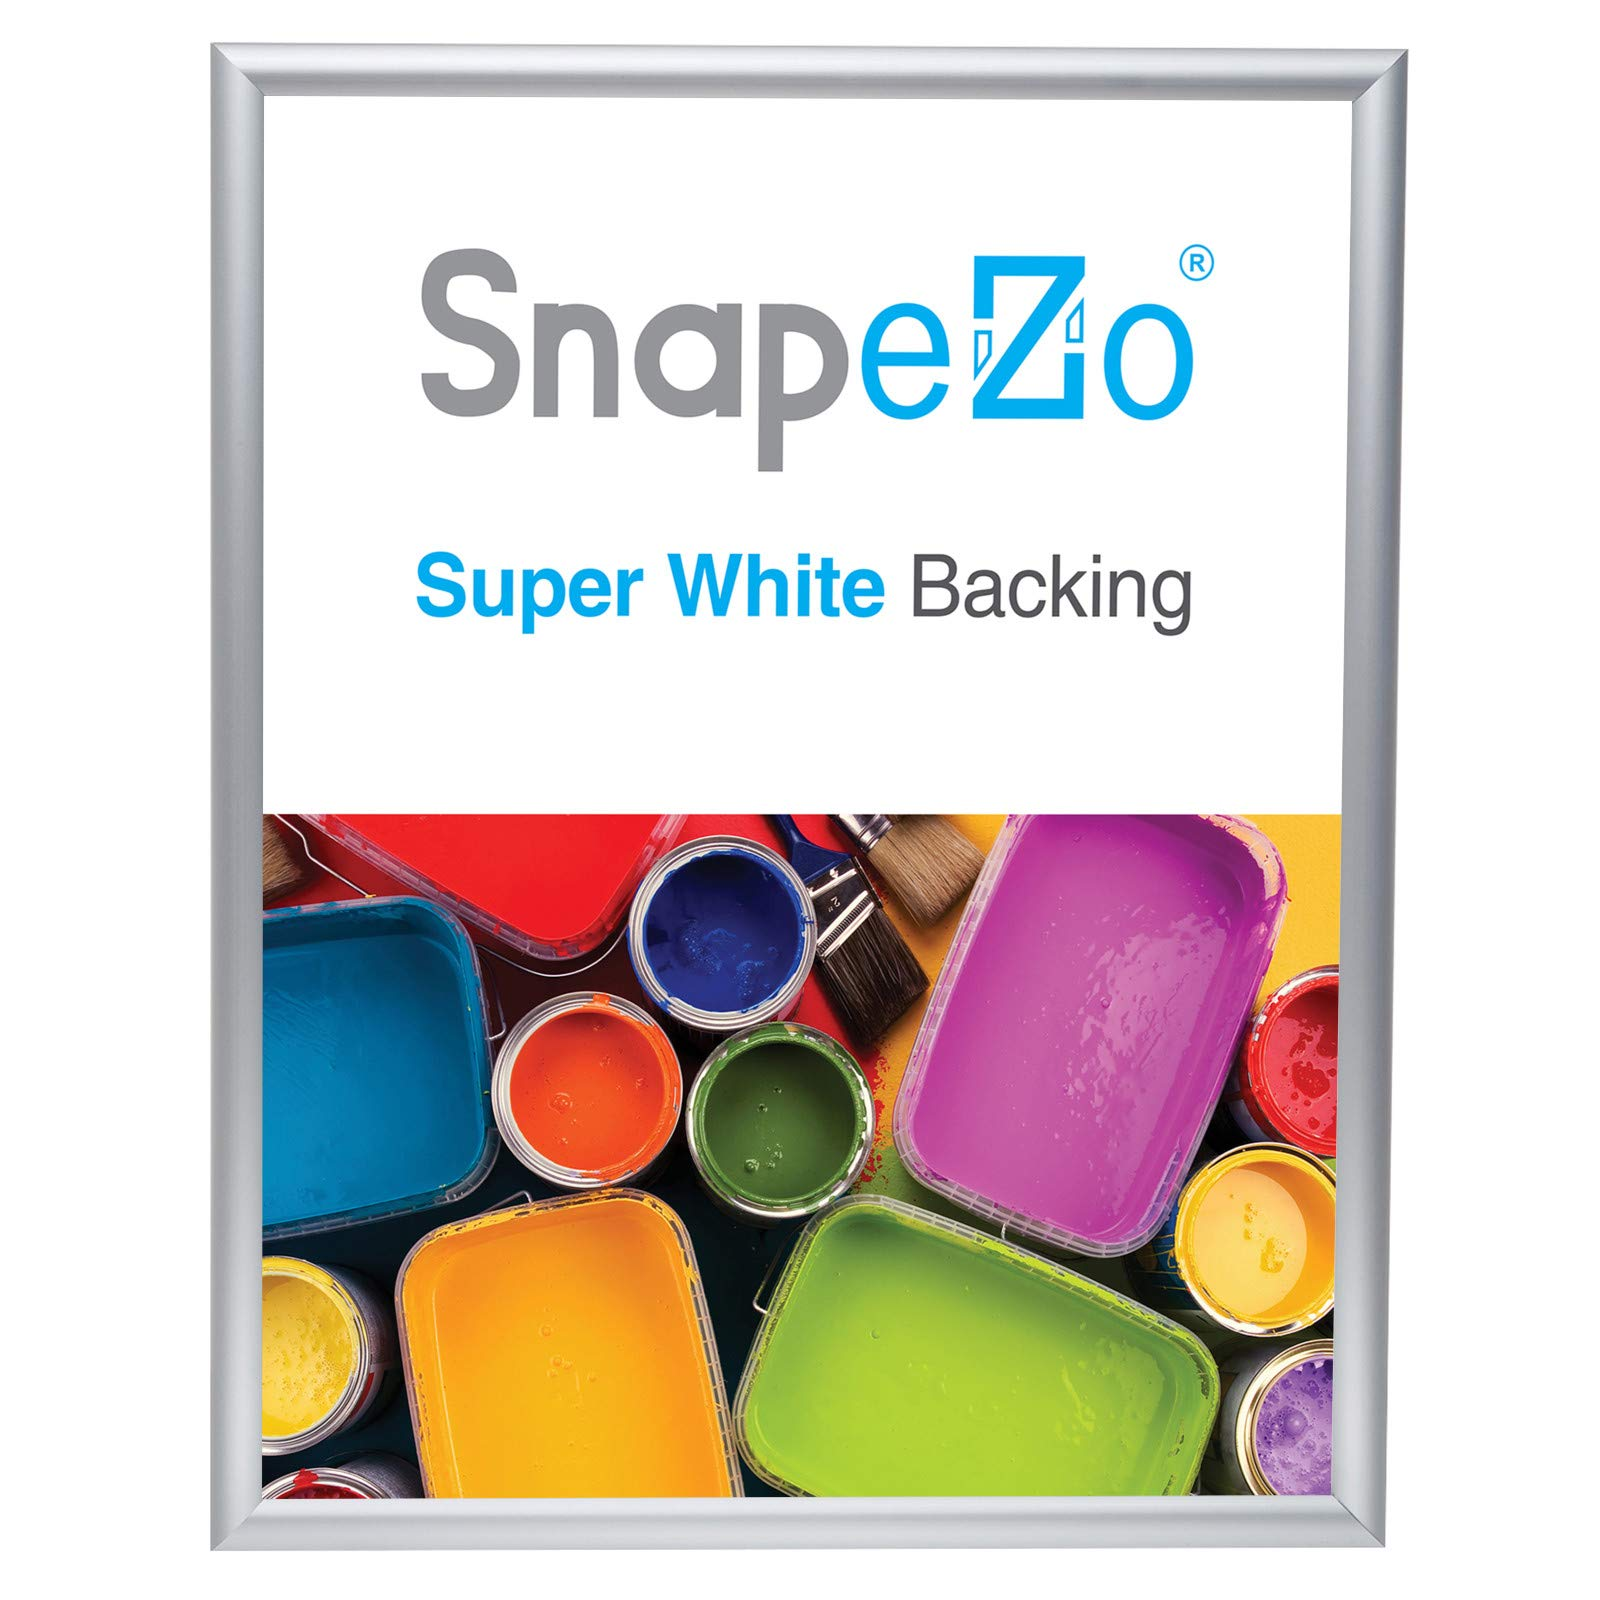 SnapeZo Photo Frame 16x20 Inches, Silver 1 Inch Aluminum Profile, Front-Loading Snap Frame, Wall Mounting, Sleek Series by SnapeZo